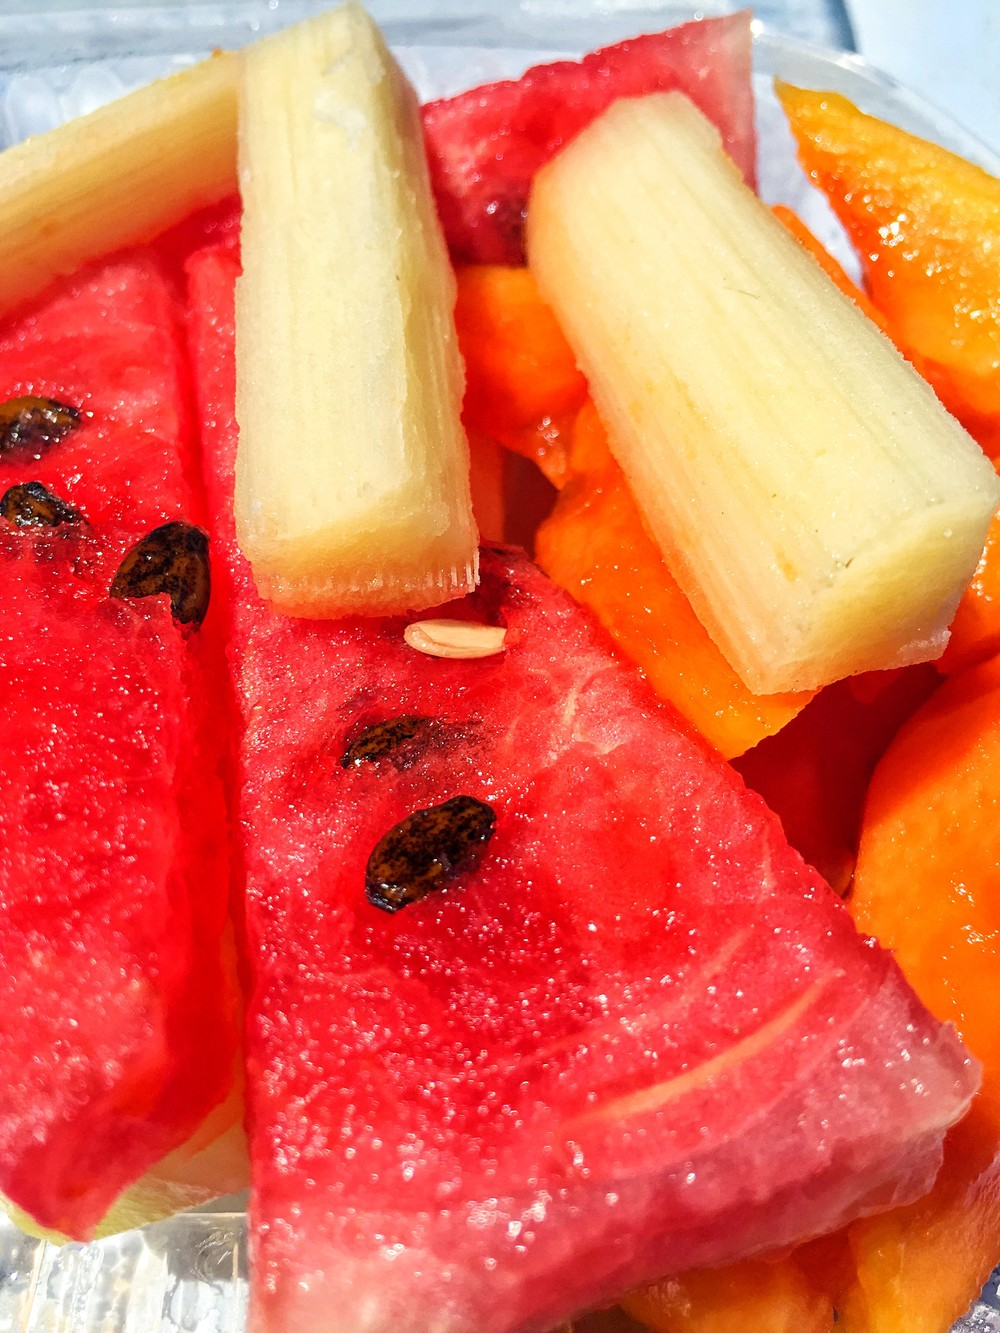 Sugar cane, watermelon and papaya